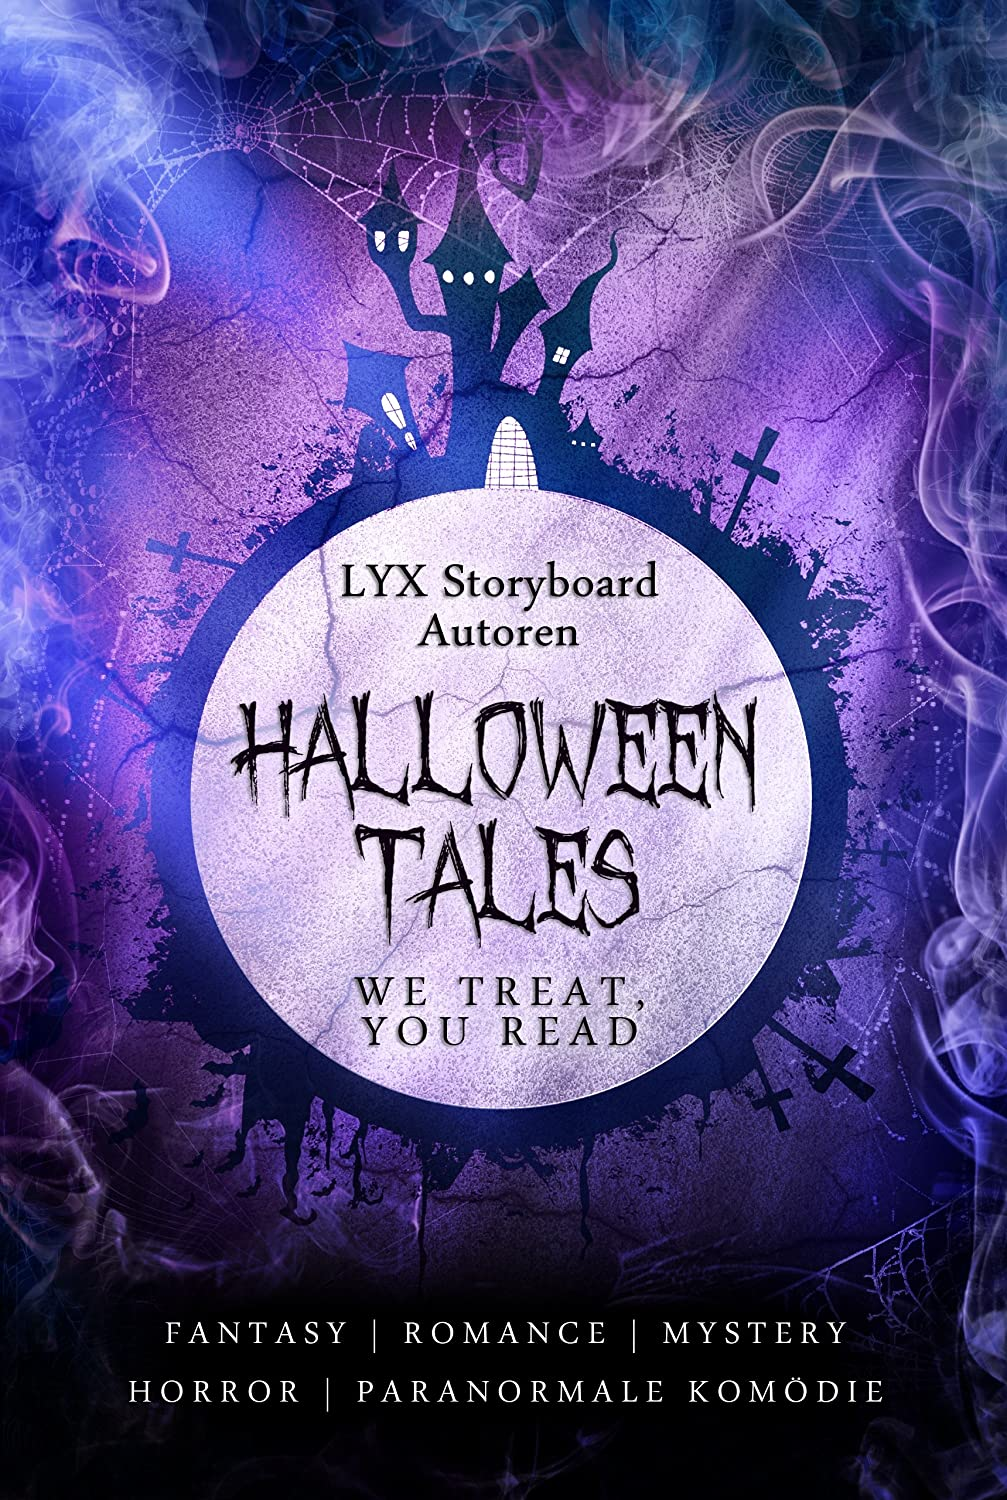 http://ilys-buecherblog.blogspot.de/2015/10/rezension-halloween-tales-we-treat-you.html